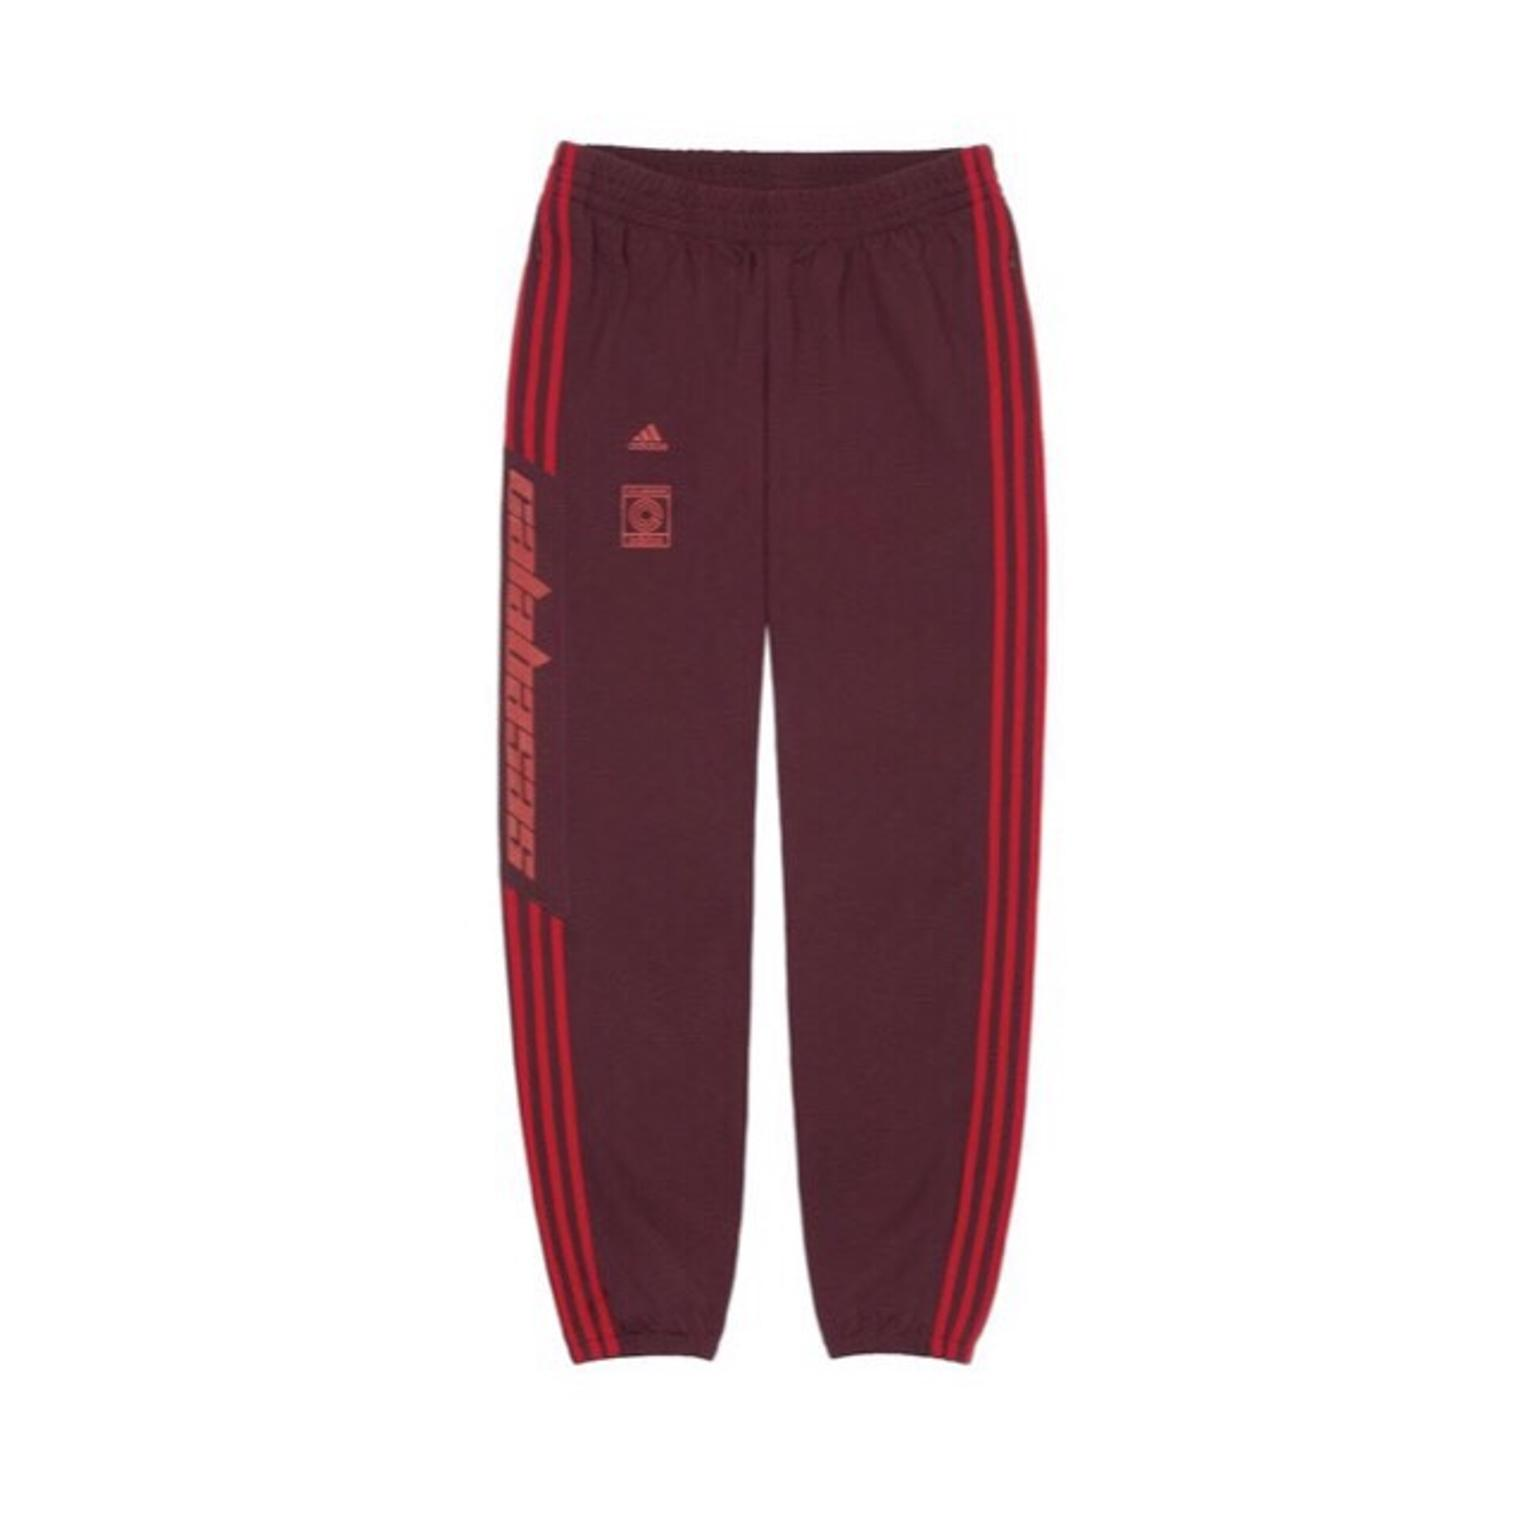 e9e216ba7501 Adidas Yeezy Calabasas Track Pants in N1C London for £250.00 for sale -  Shpock